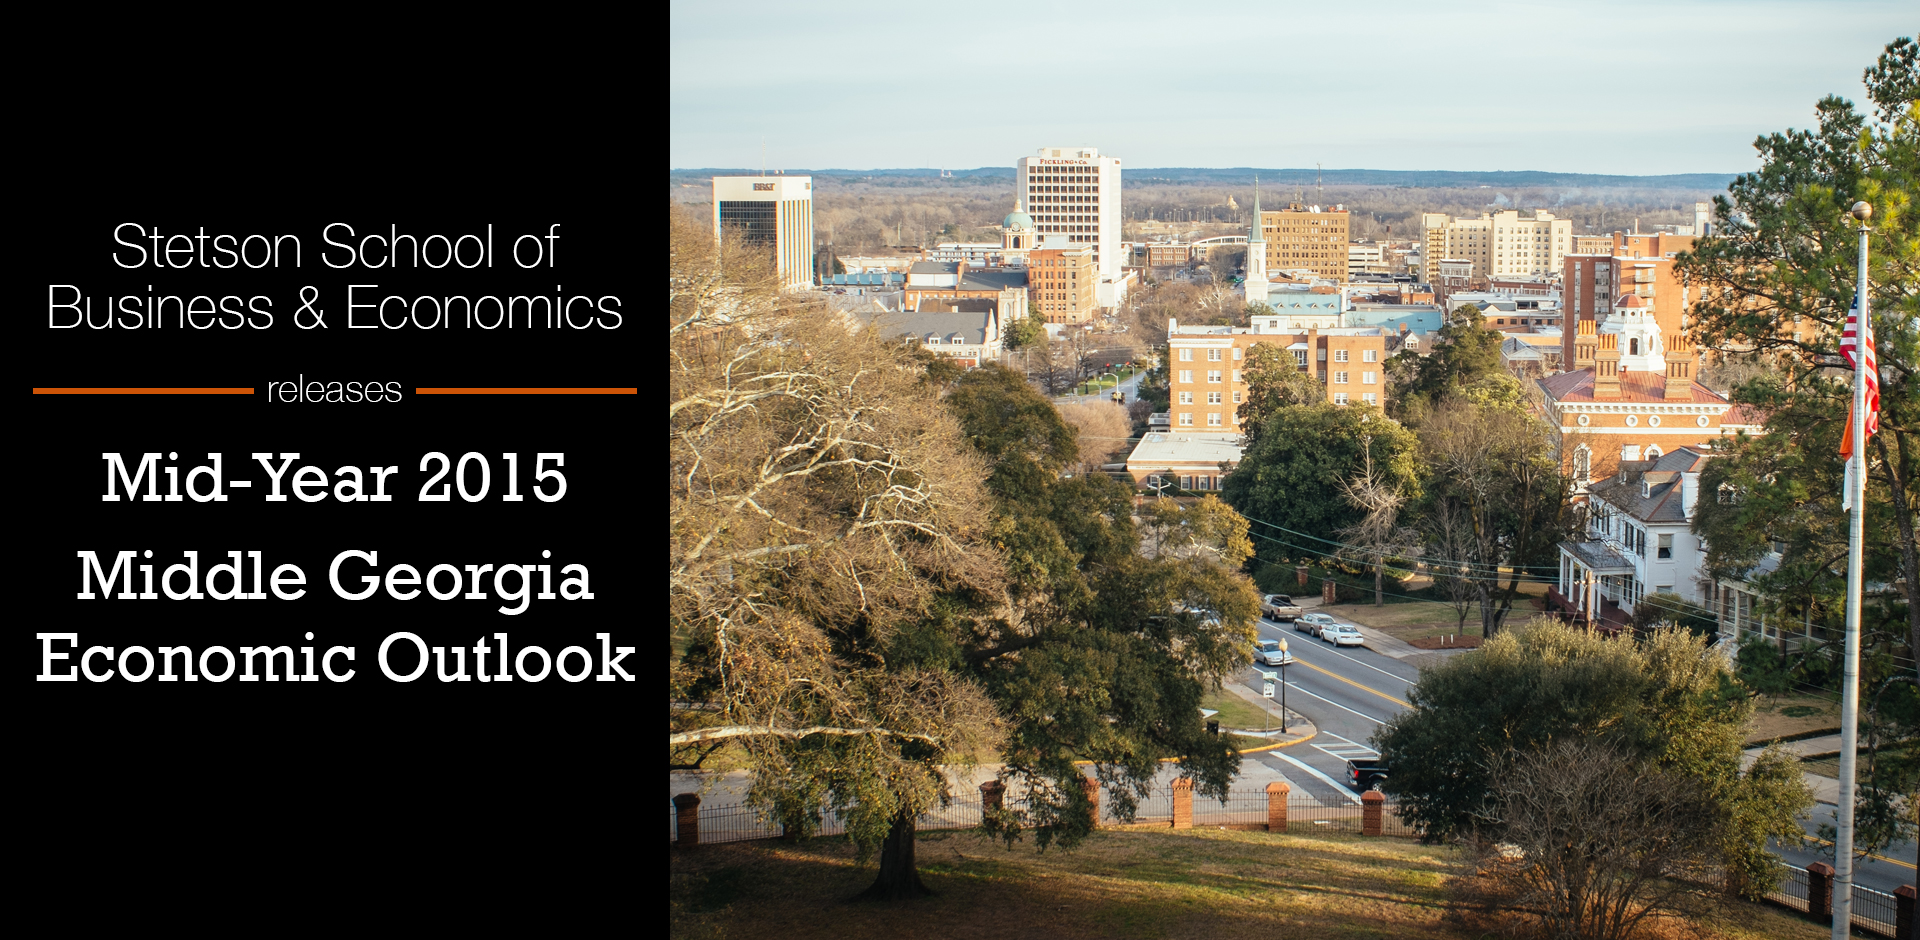 BB&T Center for Undergraduate Research in Public Policy and Capitalism Releases Results of Mid-Year Middle Georgia Economic Outlook Survey